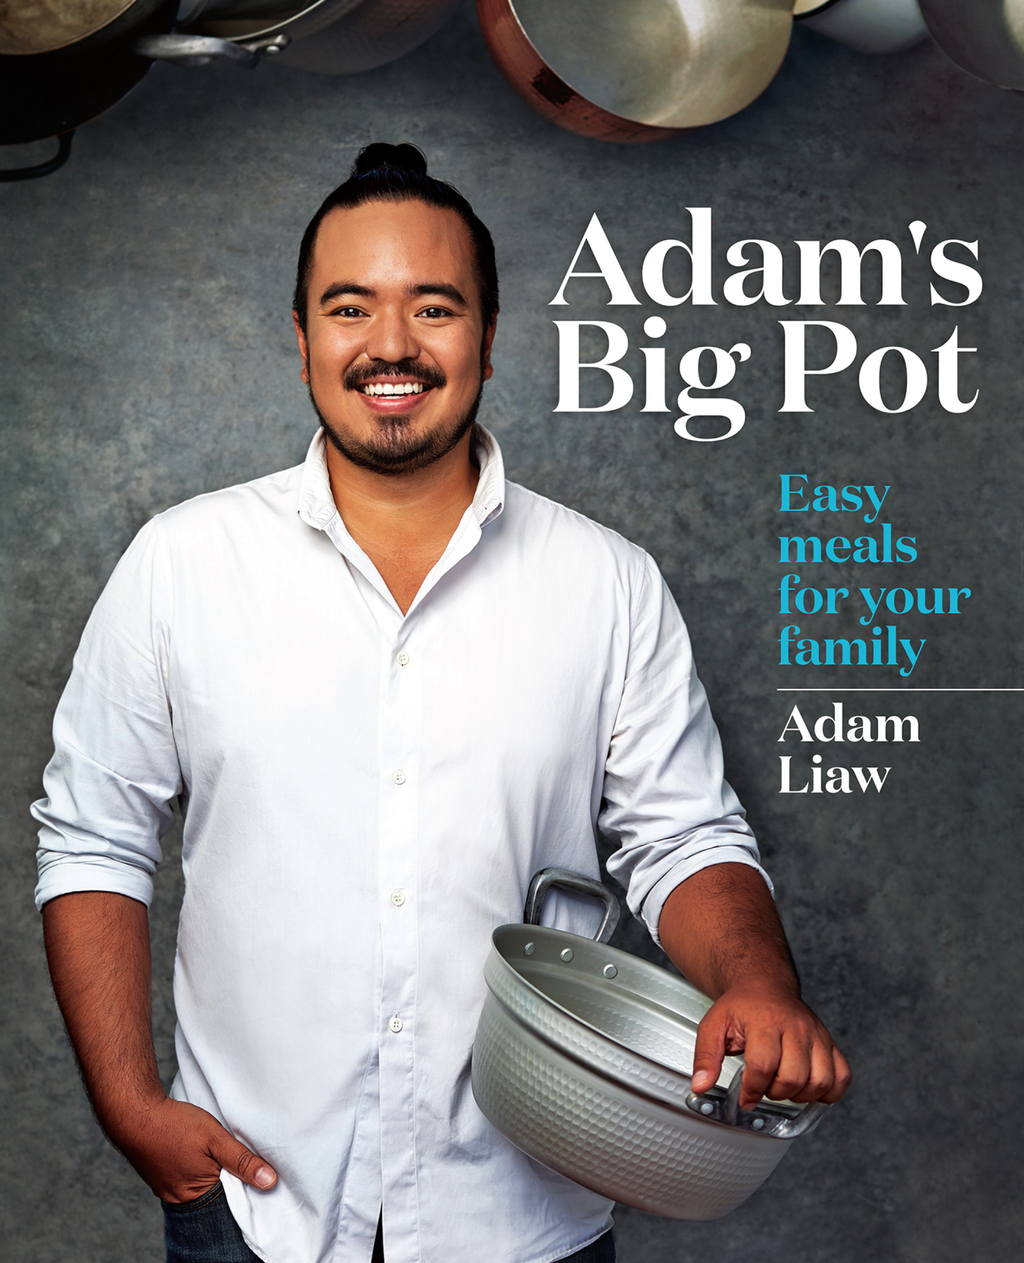 Adam's Big Pot Easy meals for your family